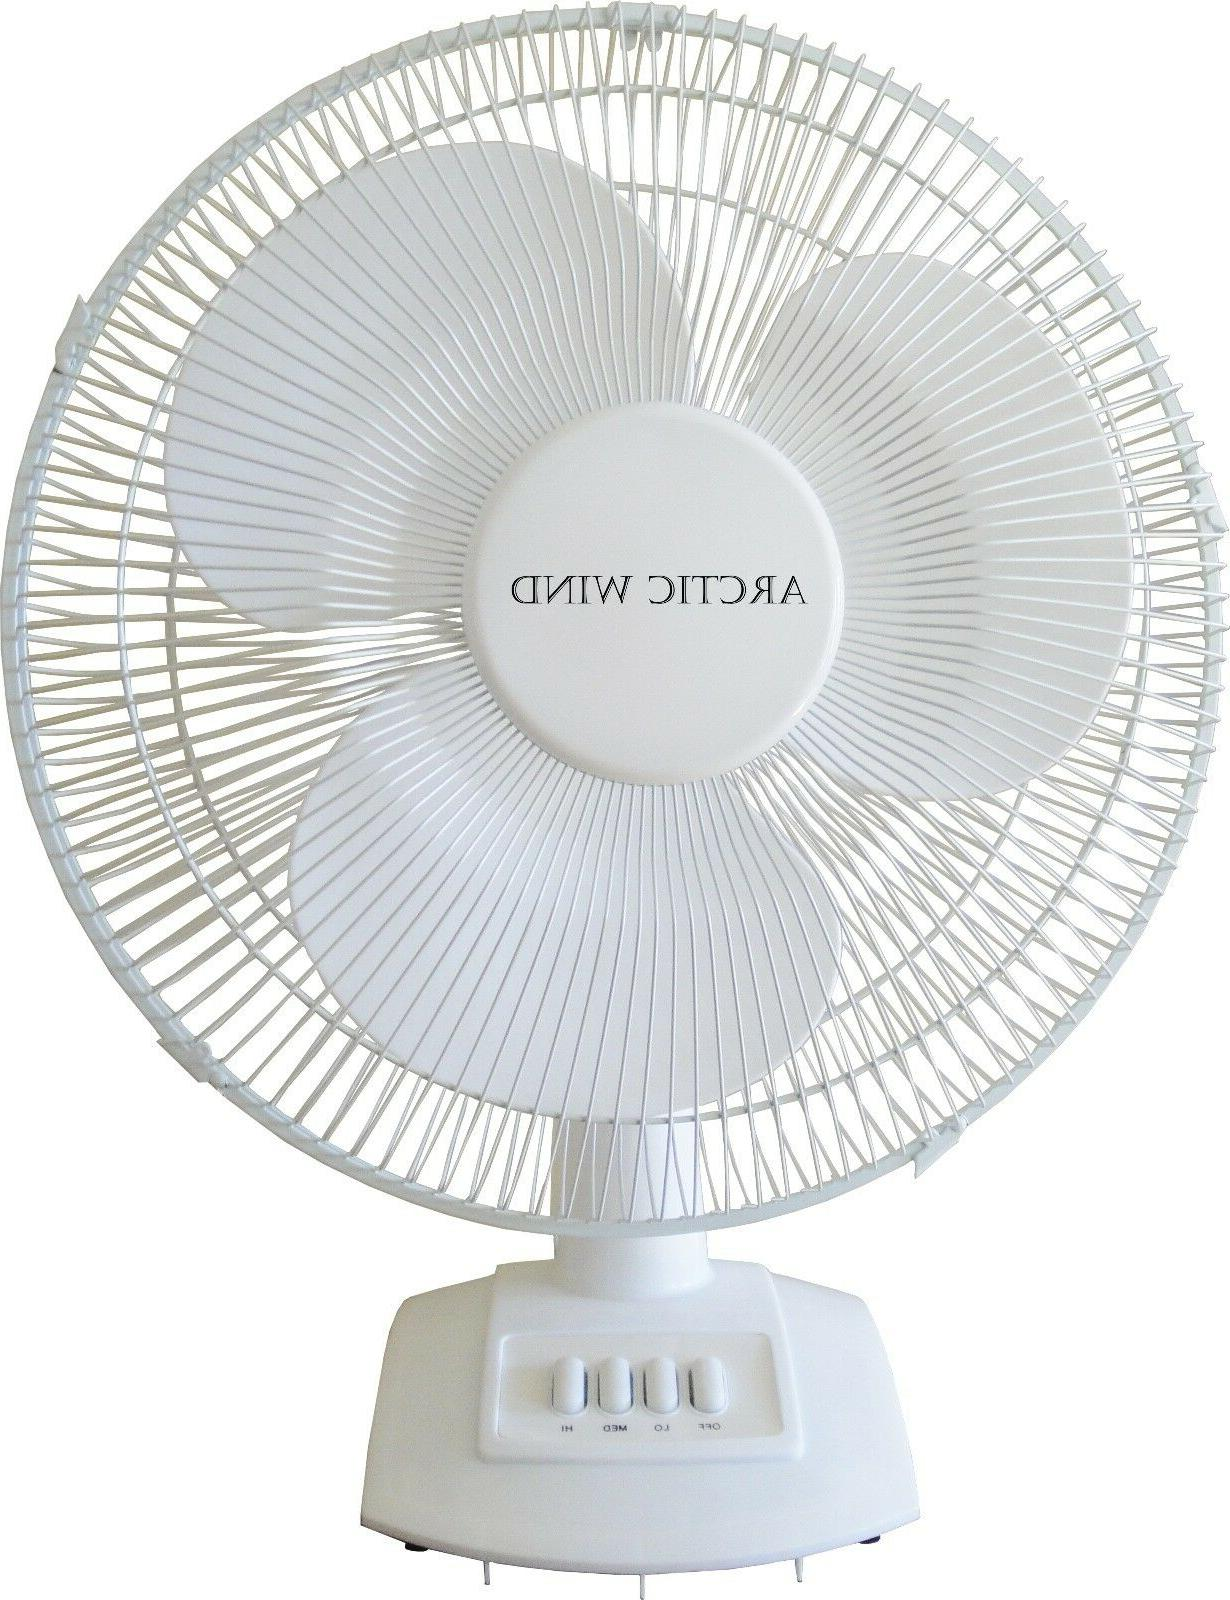 NEW WindStream 16 Inch Desk Fan, Powerful 50 watt motor, Whi